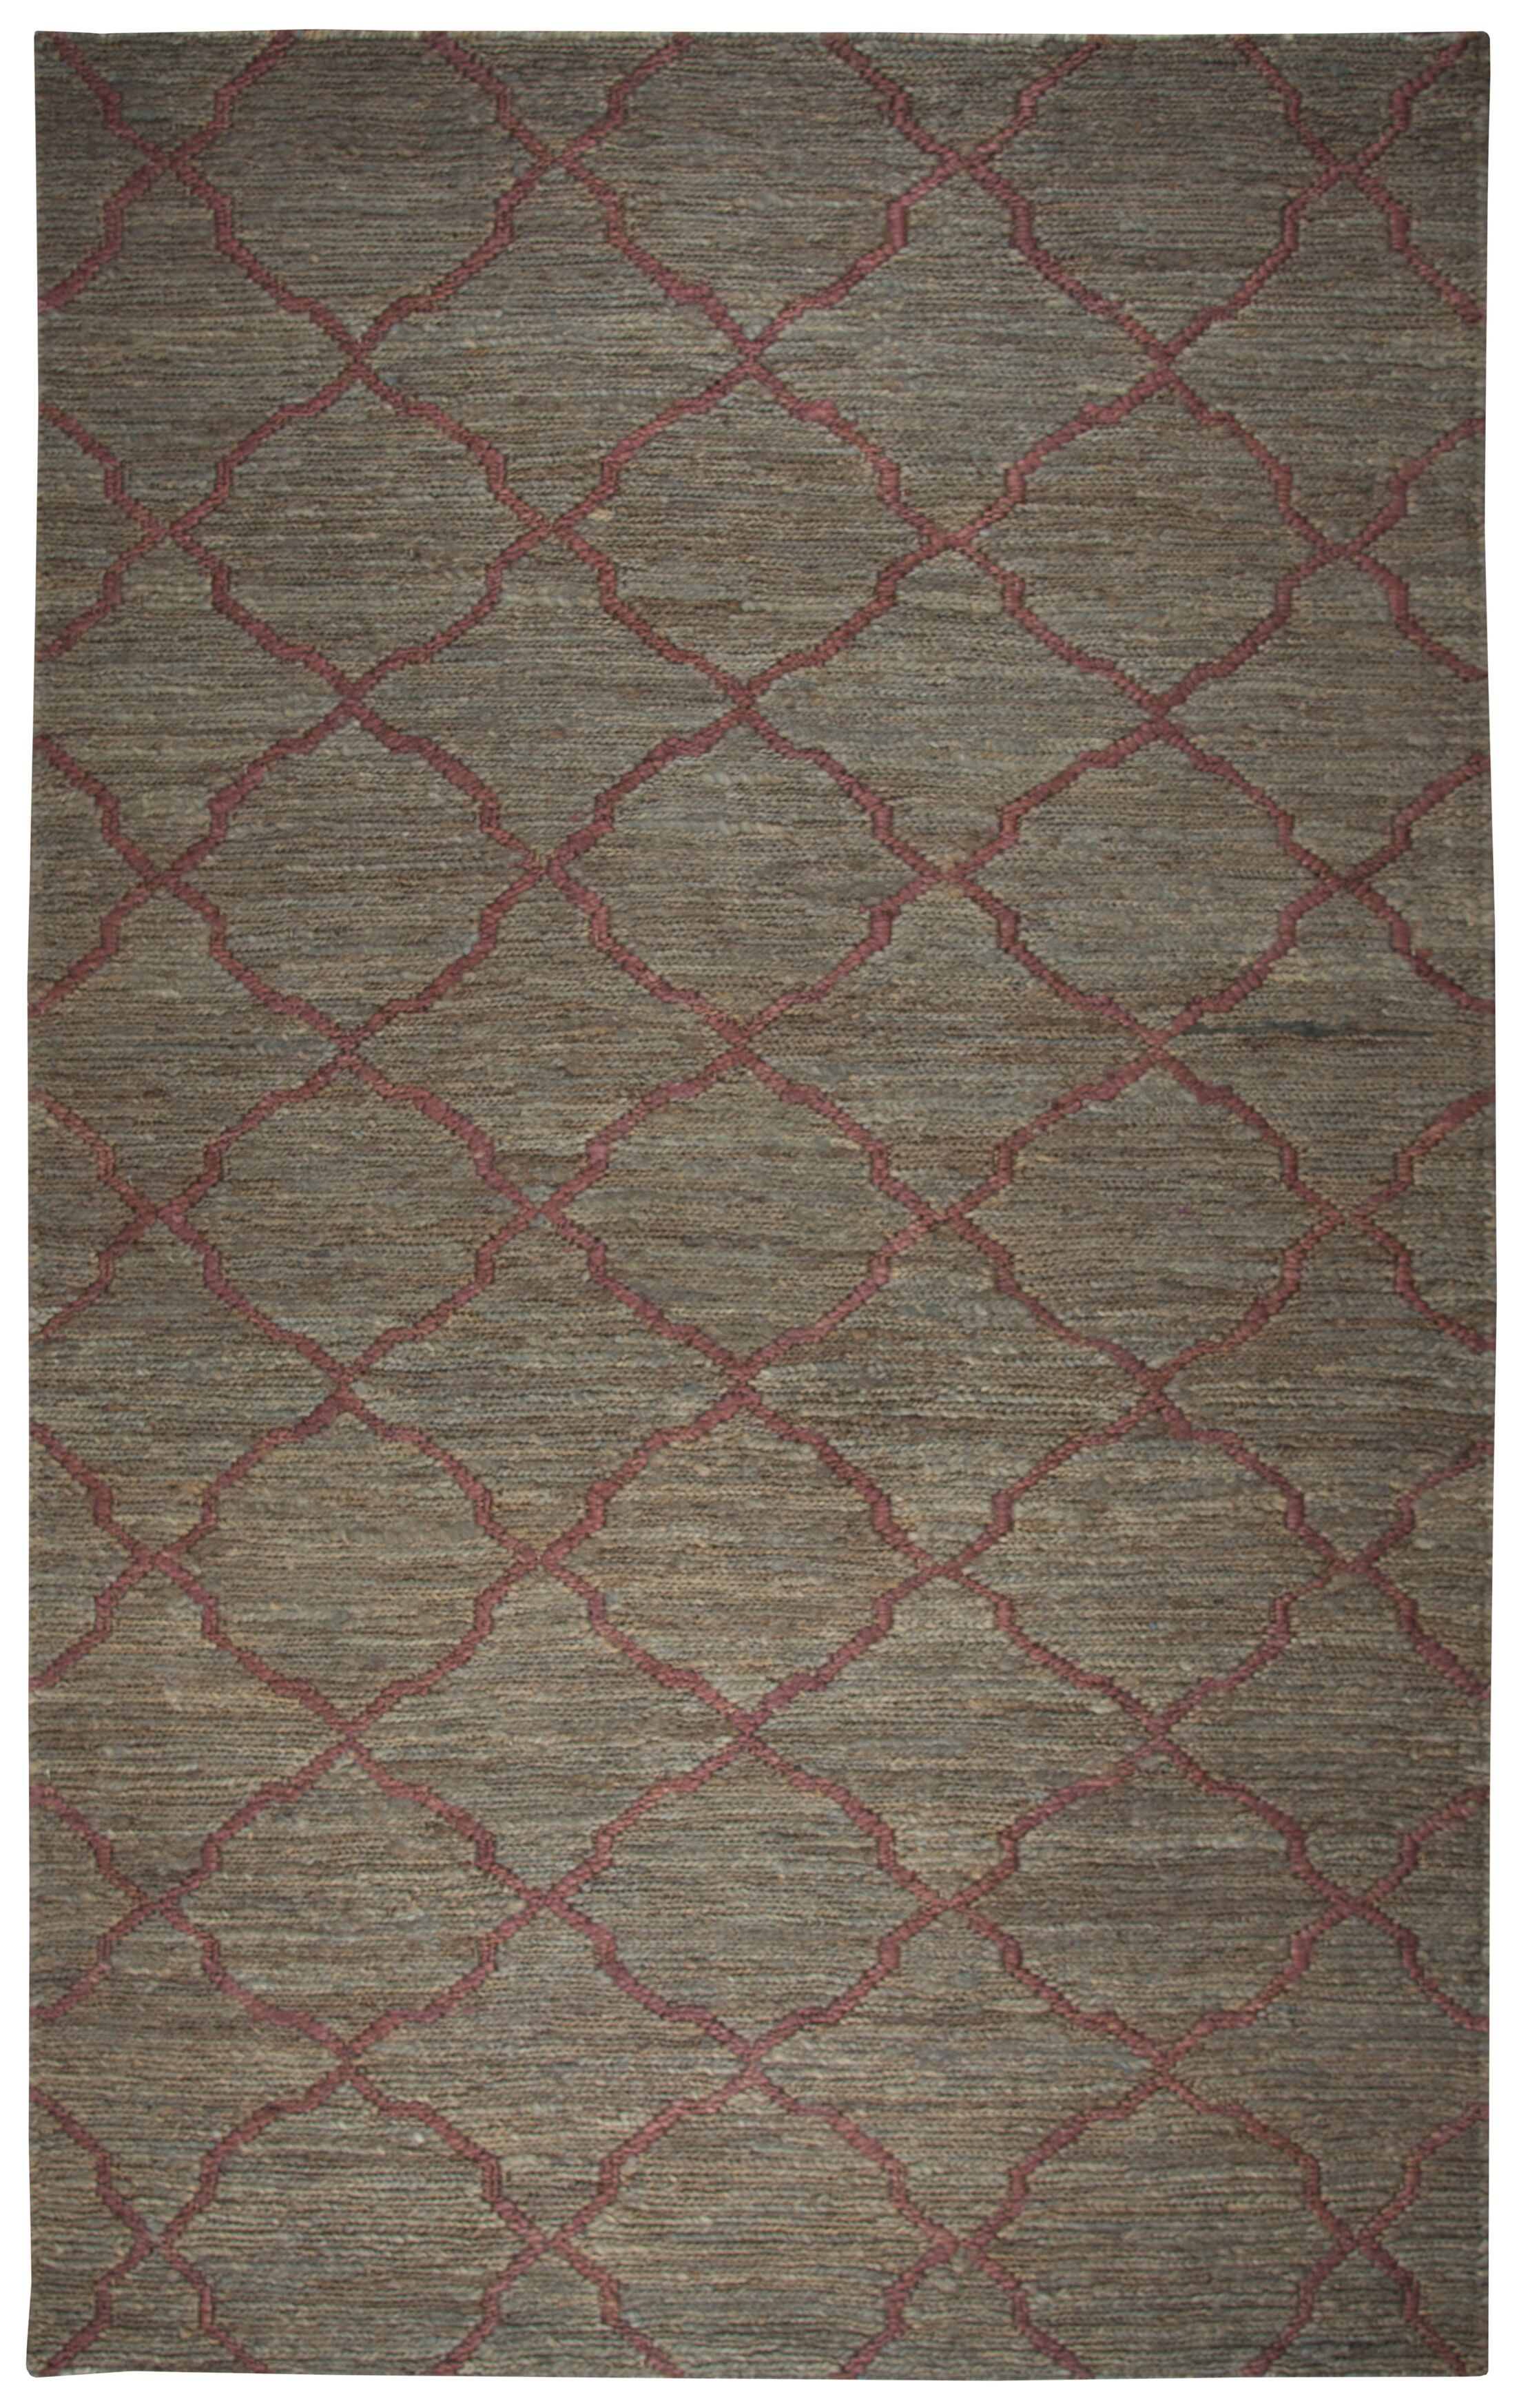 Masson Hand-Woven Brown Area Rug Size: Rectangle 8' x 10'